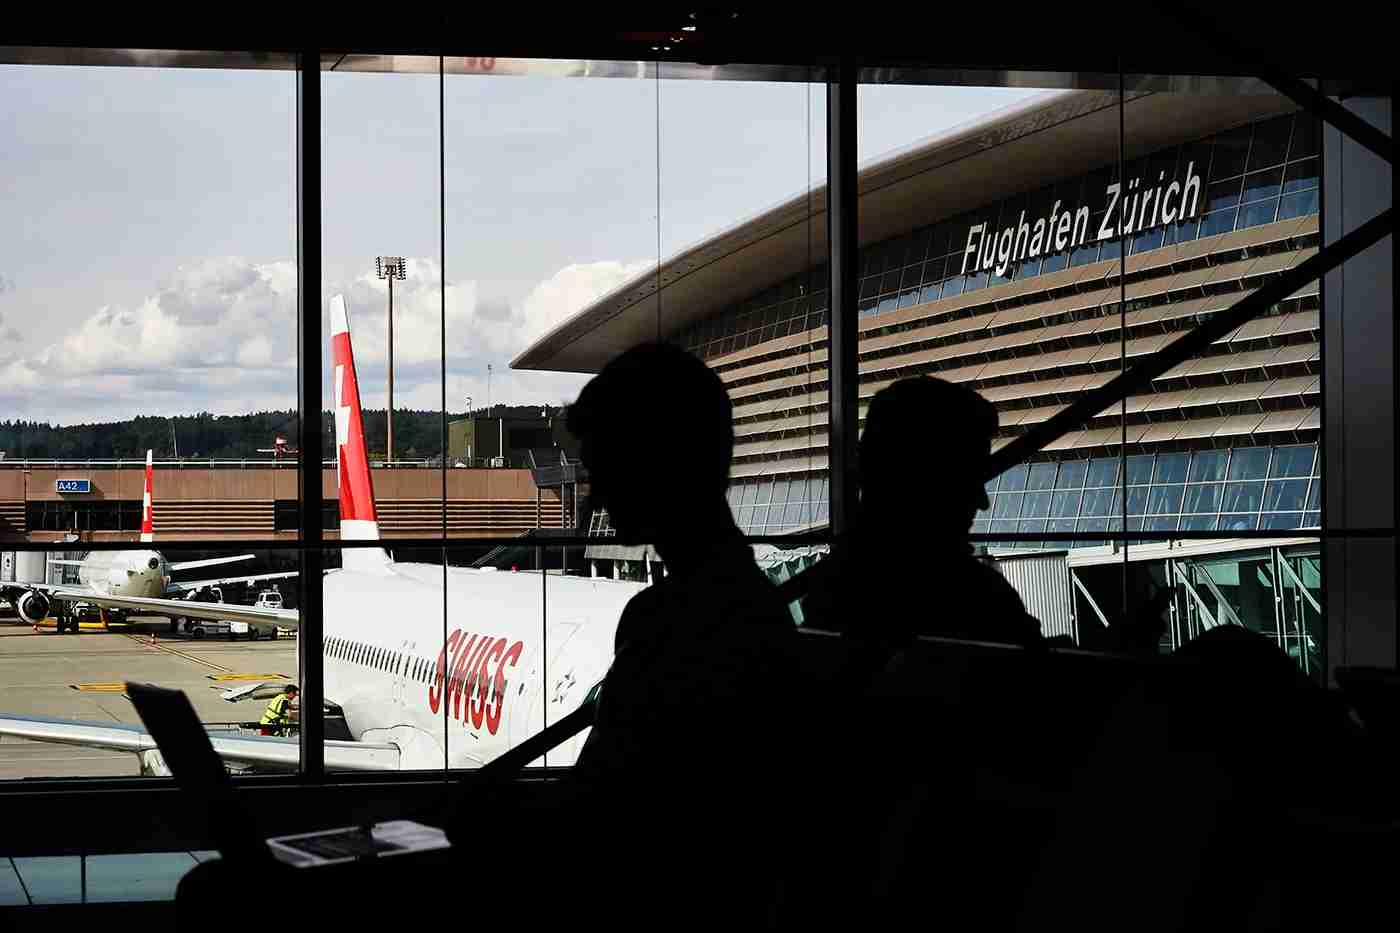 Passengers sit in front of an aircraft of Swiss International Airlines on July 6, 2016 at the Zurich Airport in Zurich. / AFP / MICHAEL BUHOLZER (Photo credit should read MICHAEL BUHOLZER/AFP/Getty Images)